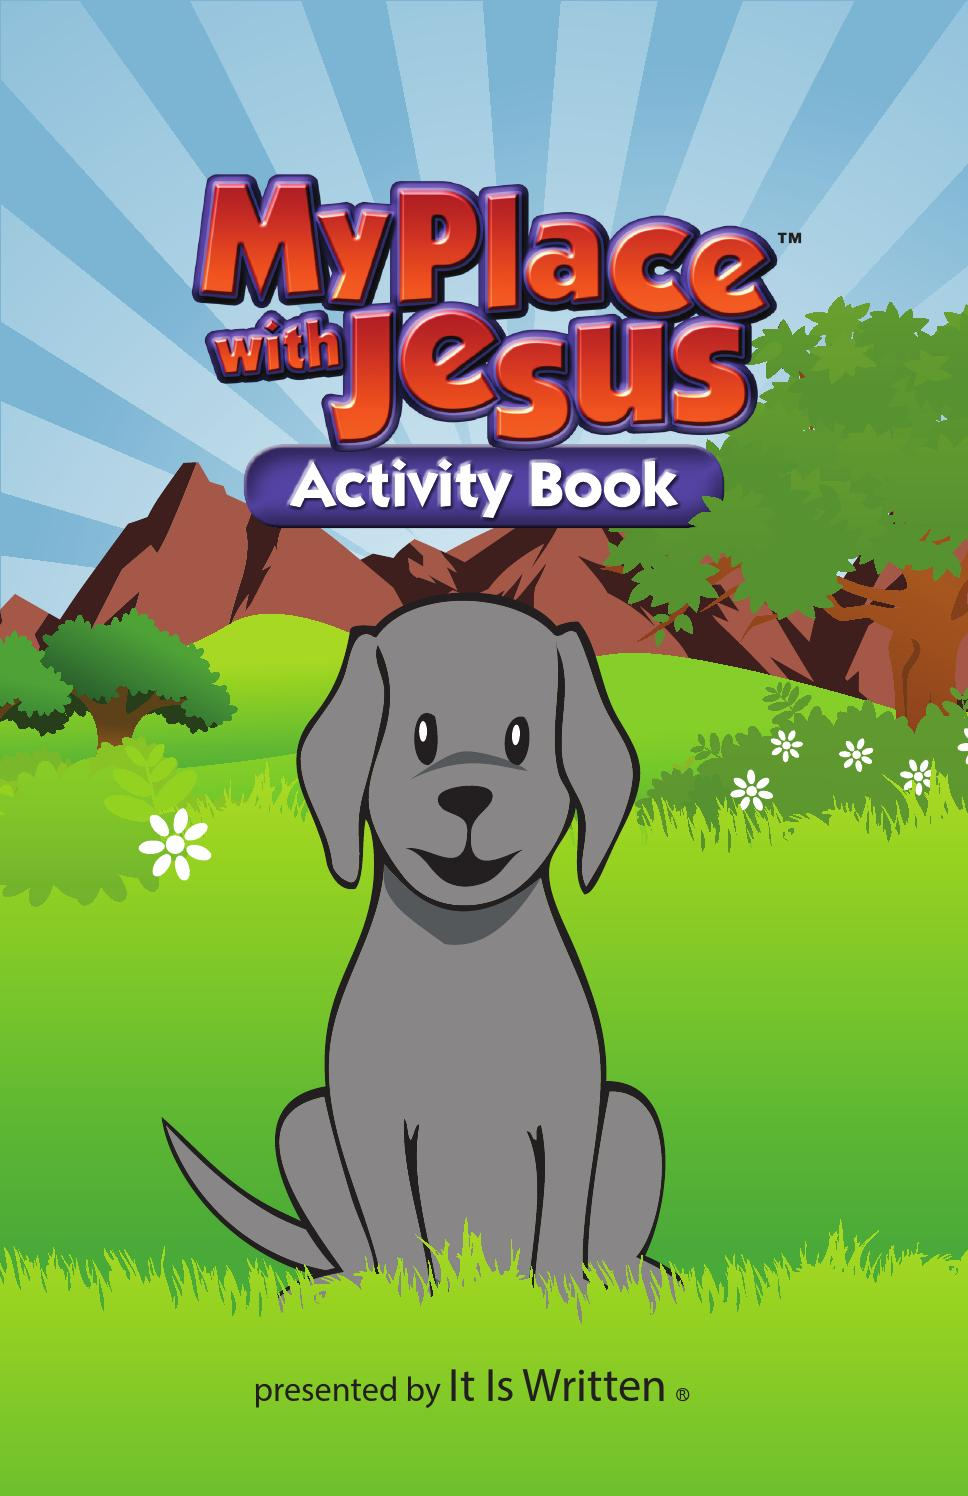 My Place With Jesus activity book by It Is Written, Inc - issuu